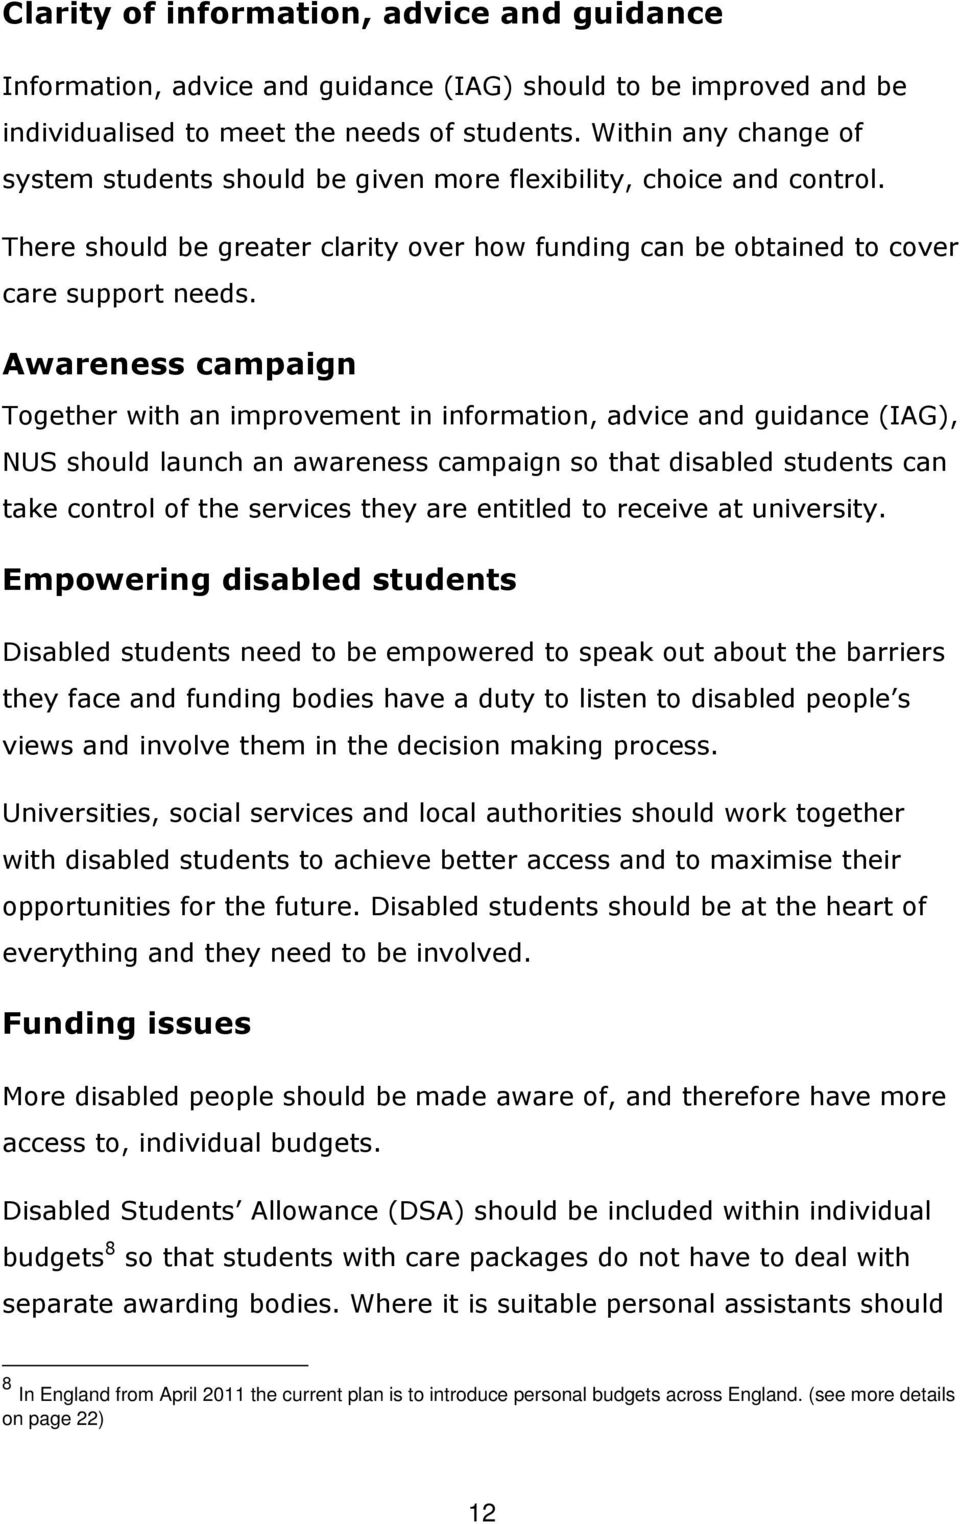 Awareness campaign Together with an improvement in information, advice and guidance (IAG), NUS should launch an awareness campaign so that disabled students can take control of the services they are